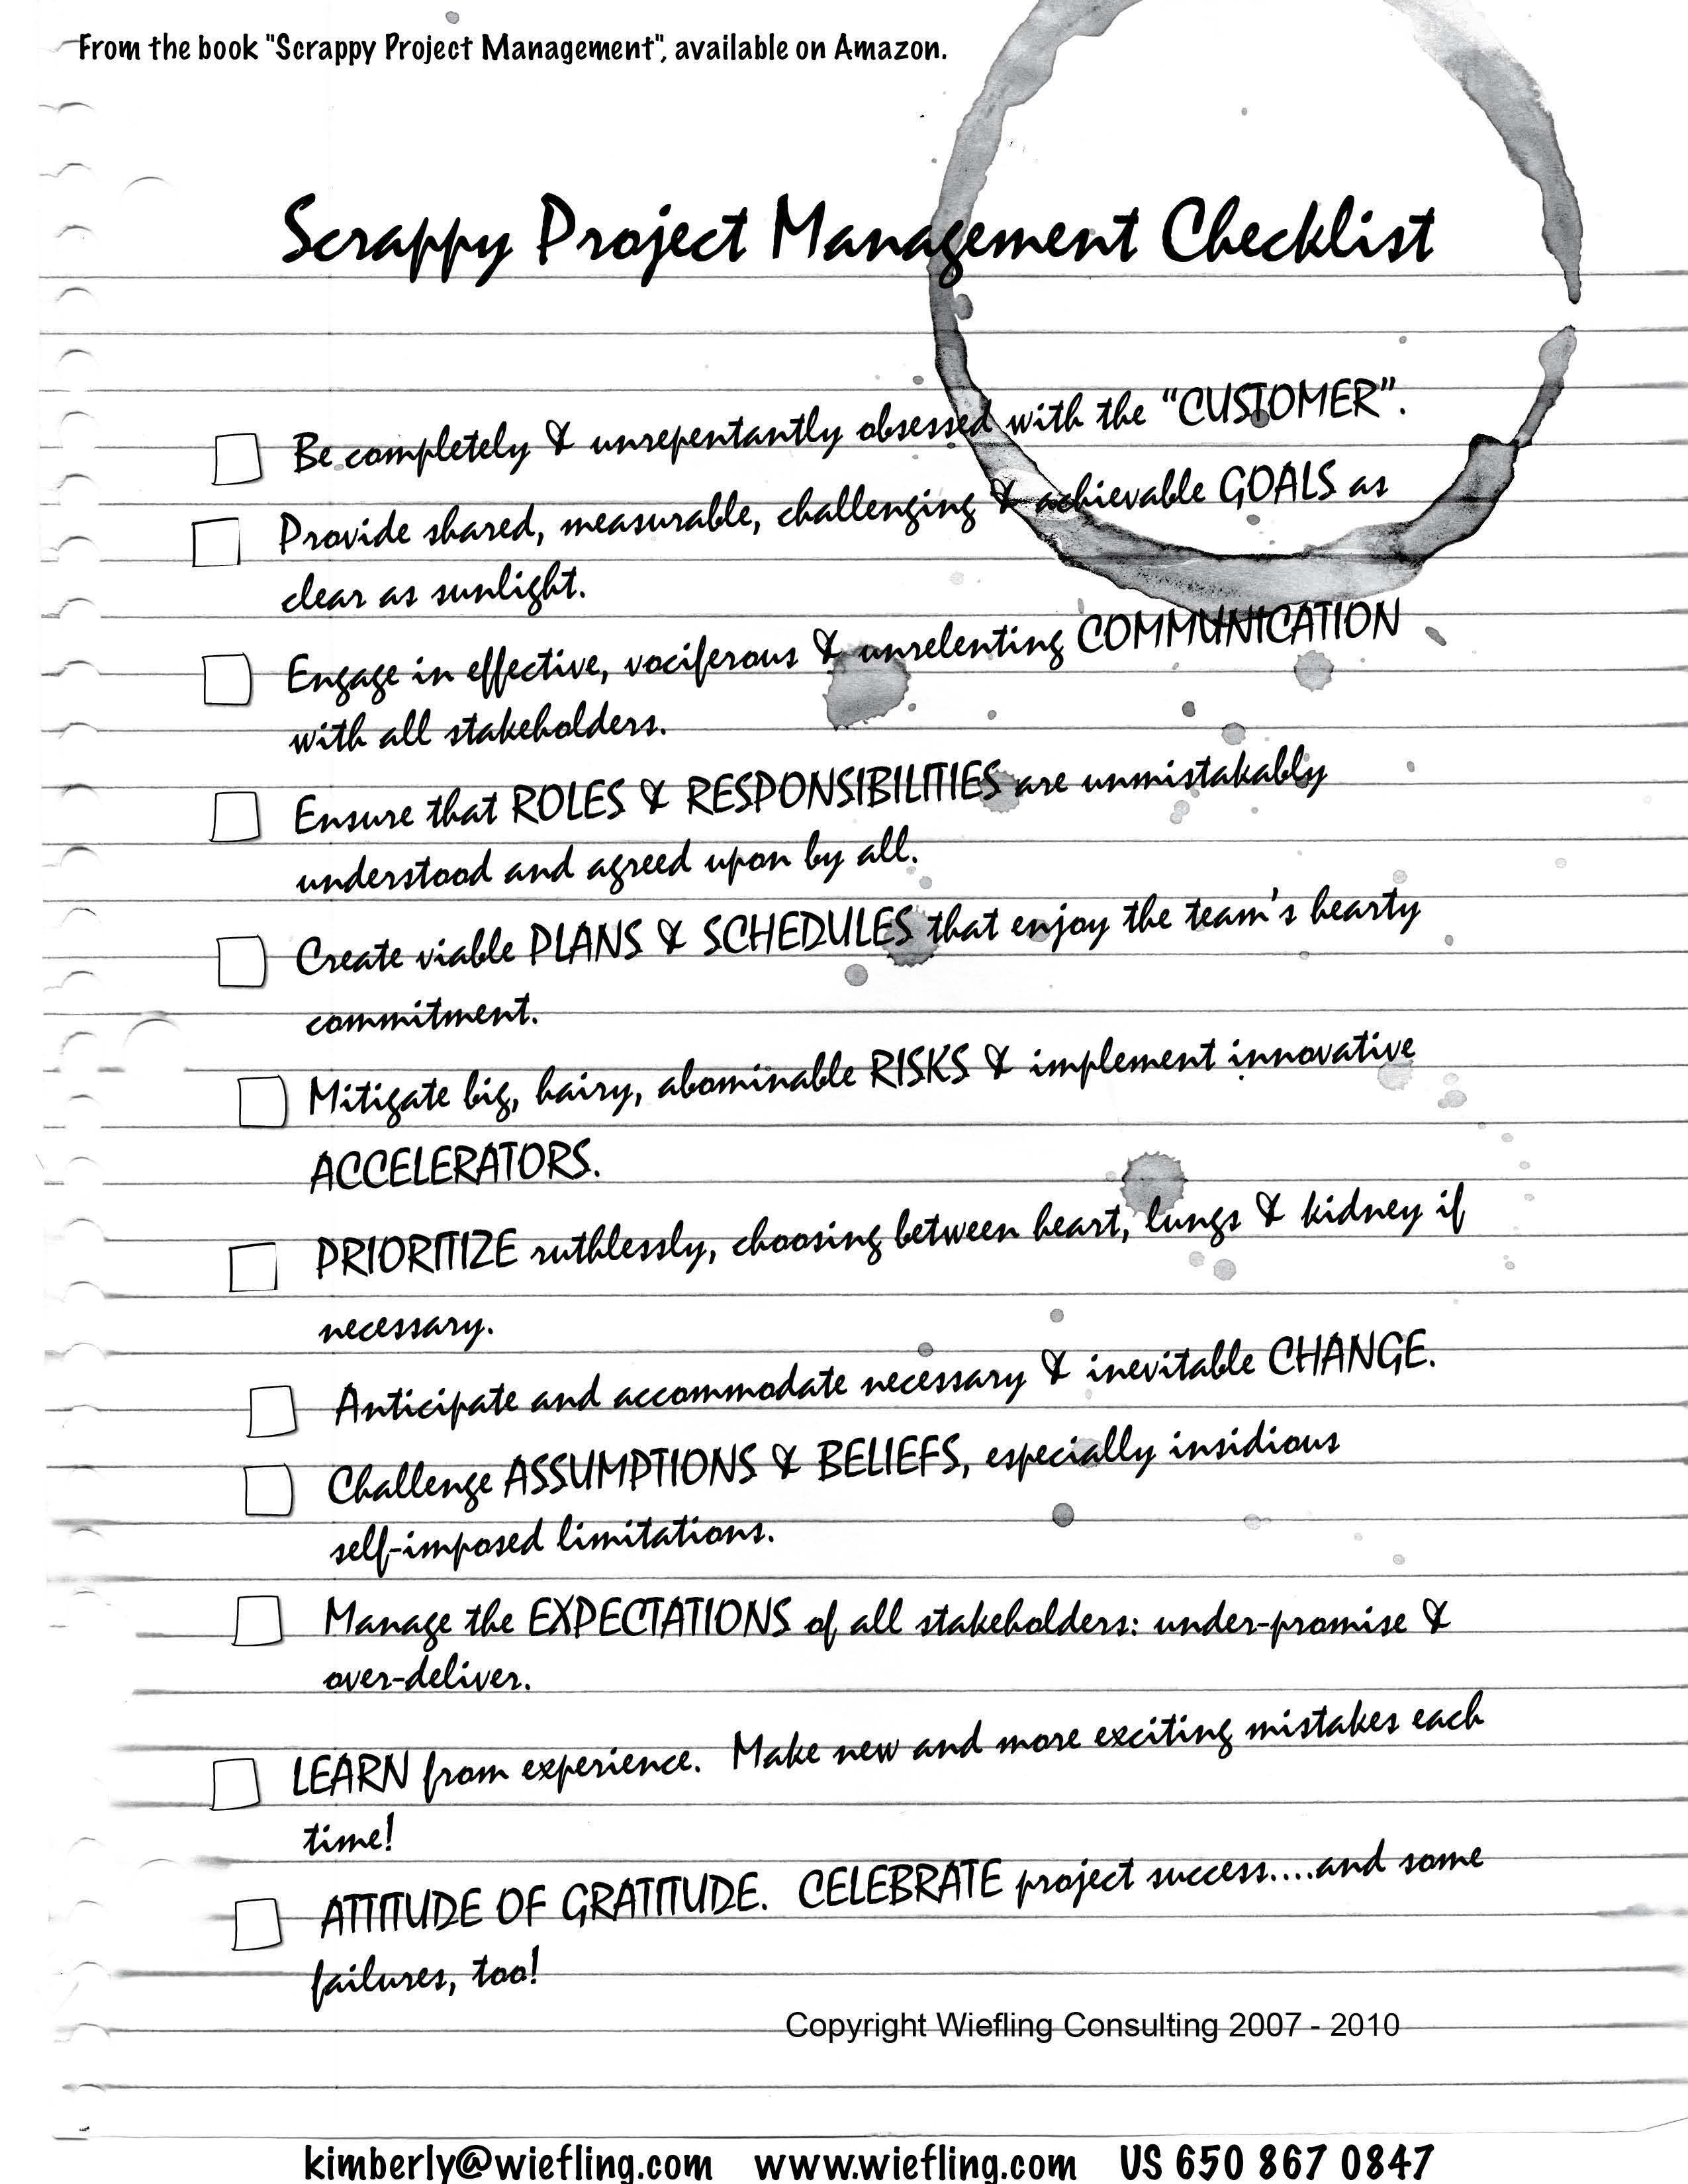 Wiefling Consulting Scrappy Project Management Checklist Overview – Project Checklist